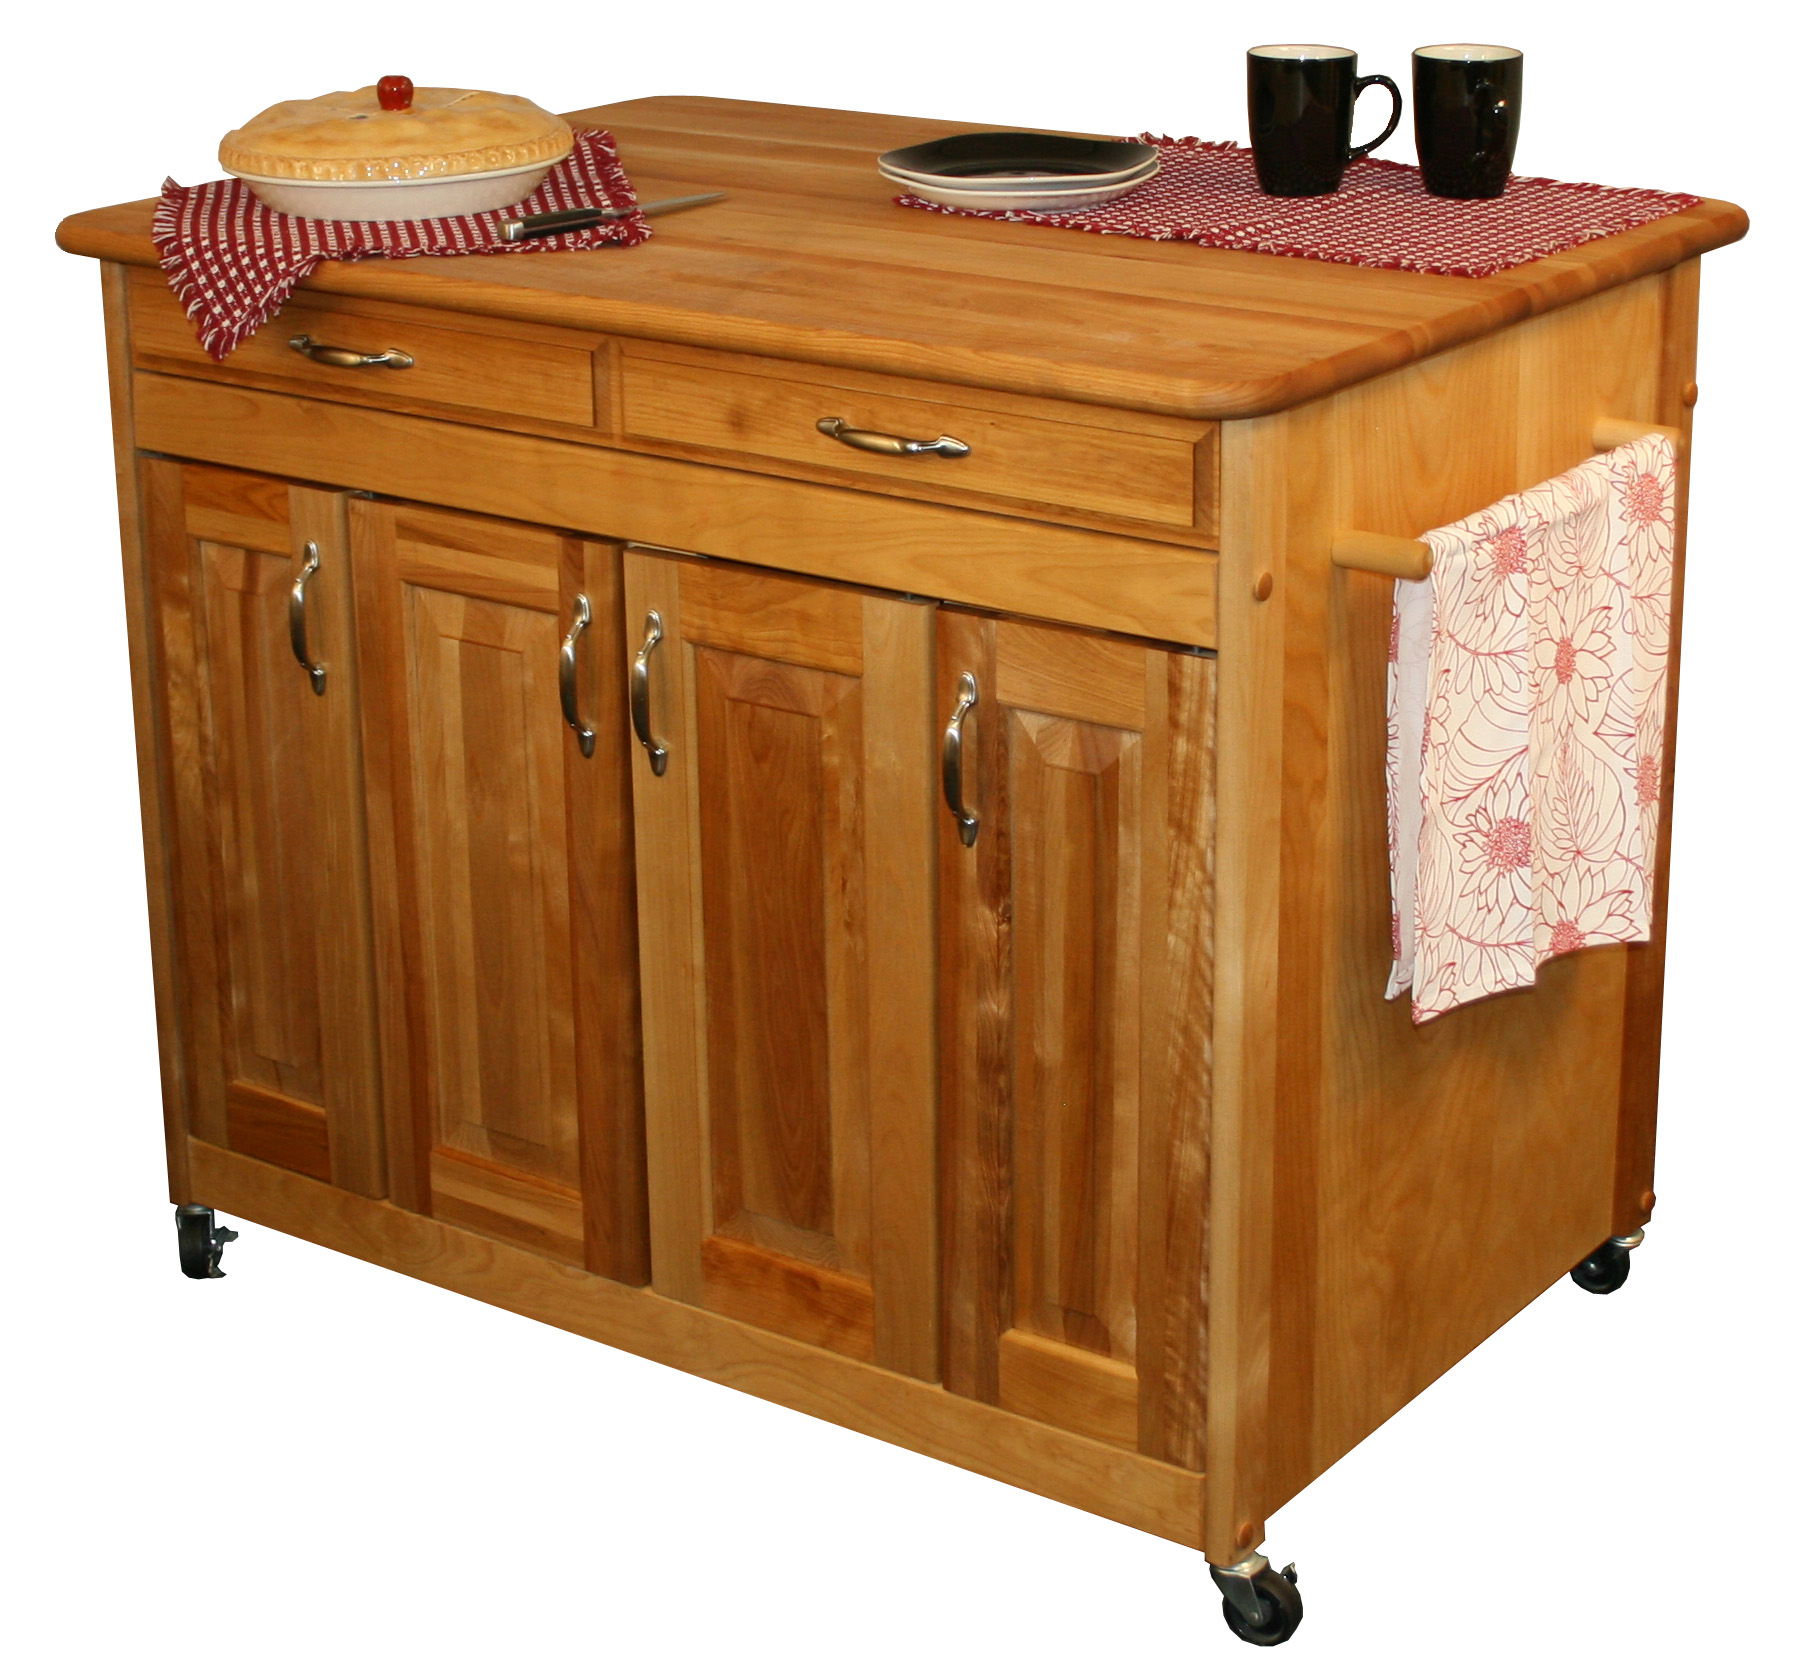 Catskill Craftsmen Butcher Block Work Center Plus Model 54230